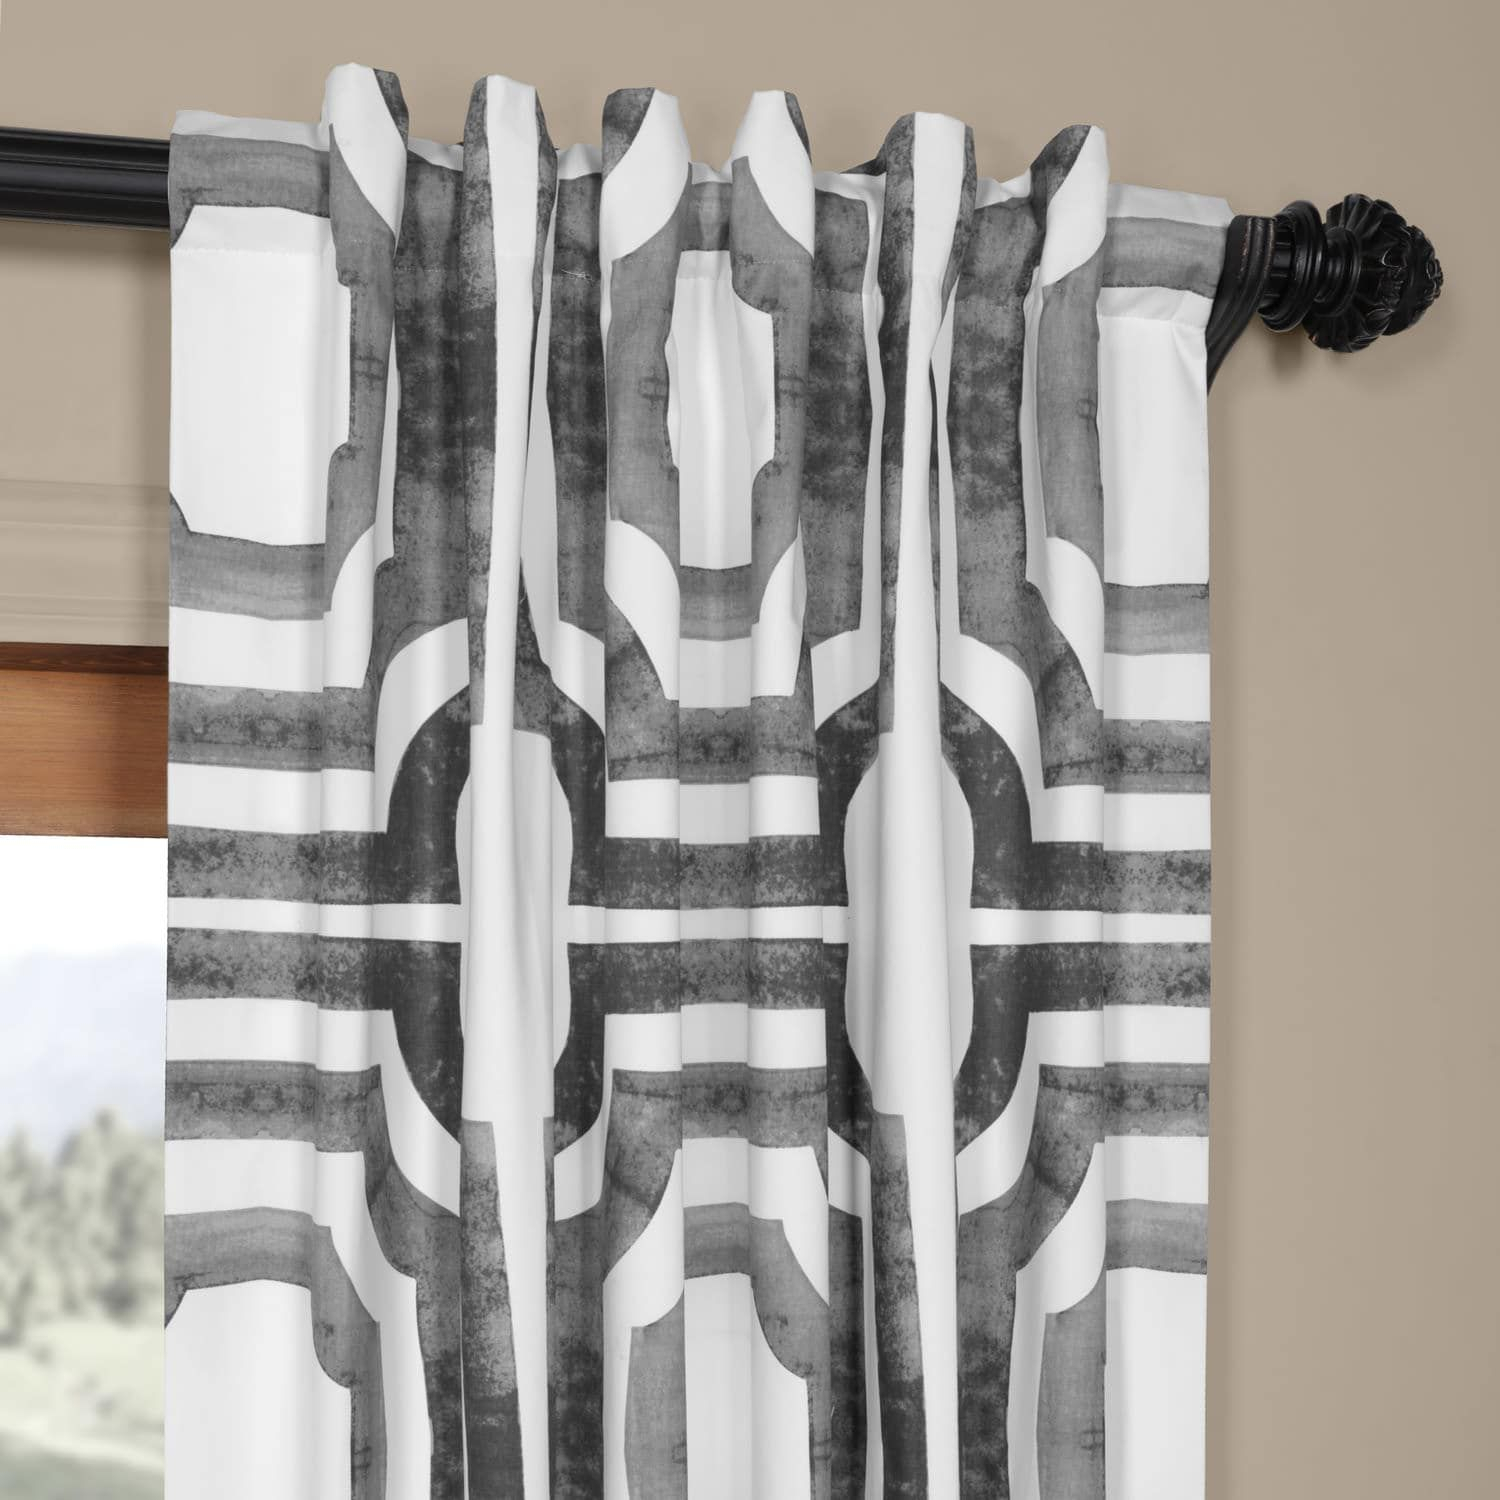 Mecca Steel Printed Cotton Curtain | New Home In 2019 Intended For Mecca Printed Cotton Single Curtain Panels (View 13 of 20)